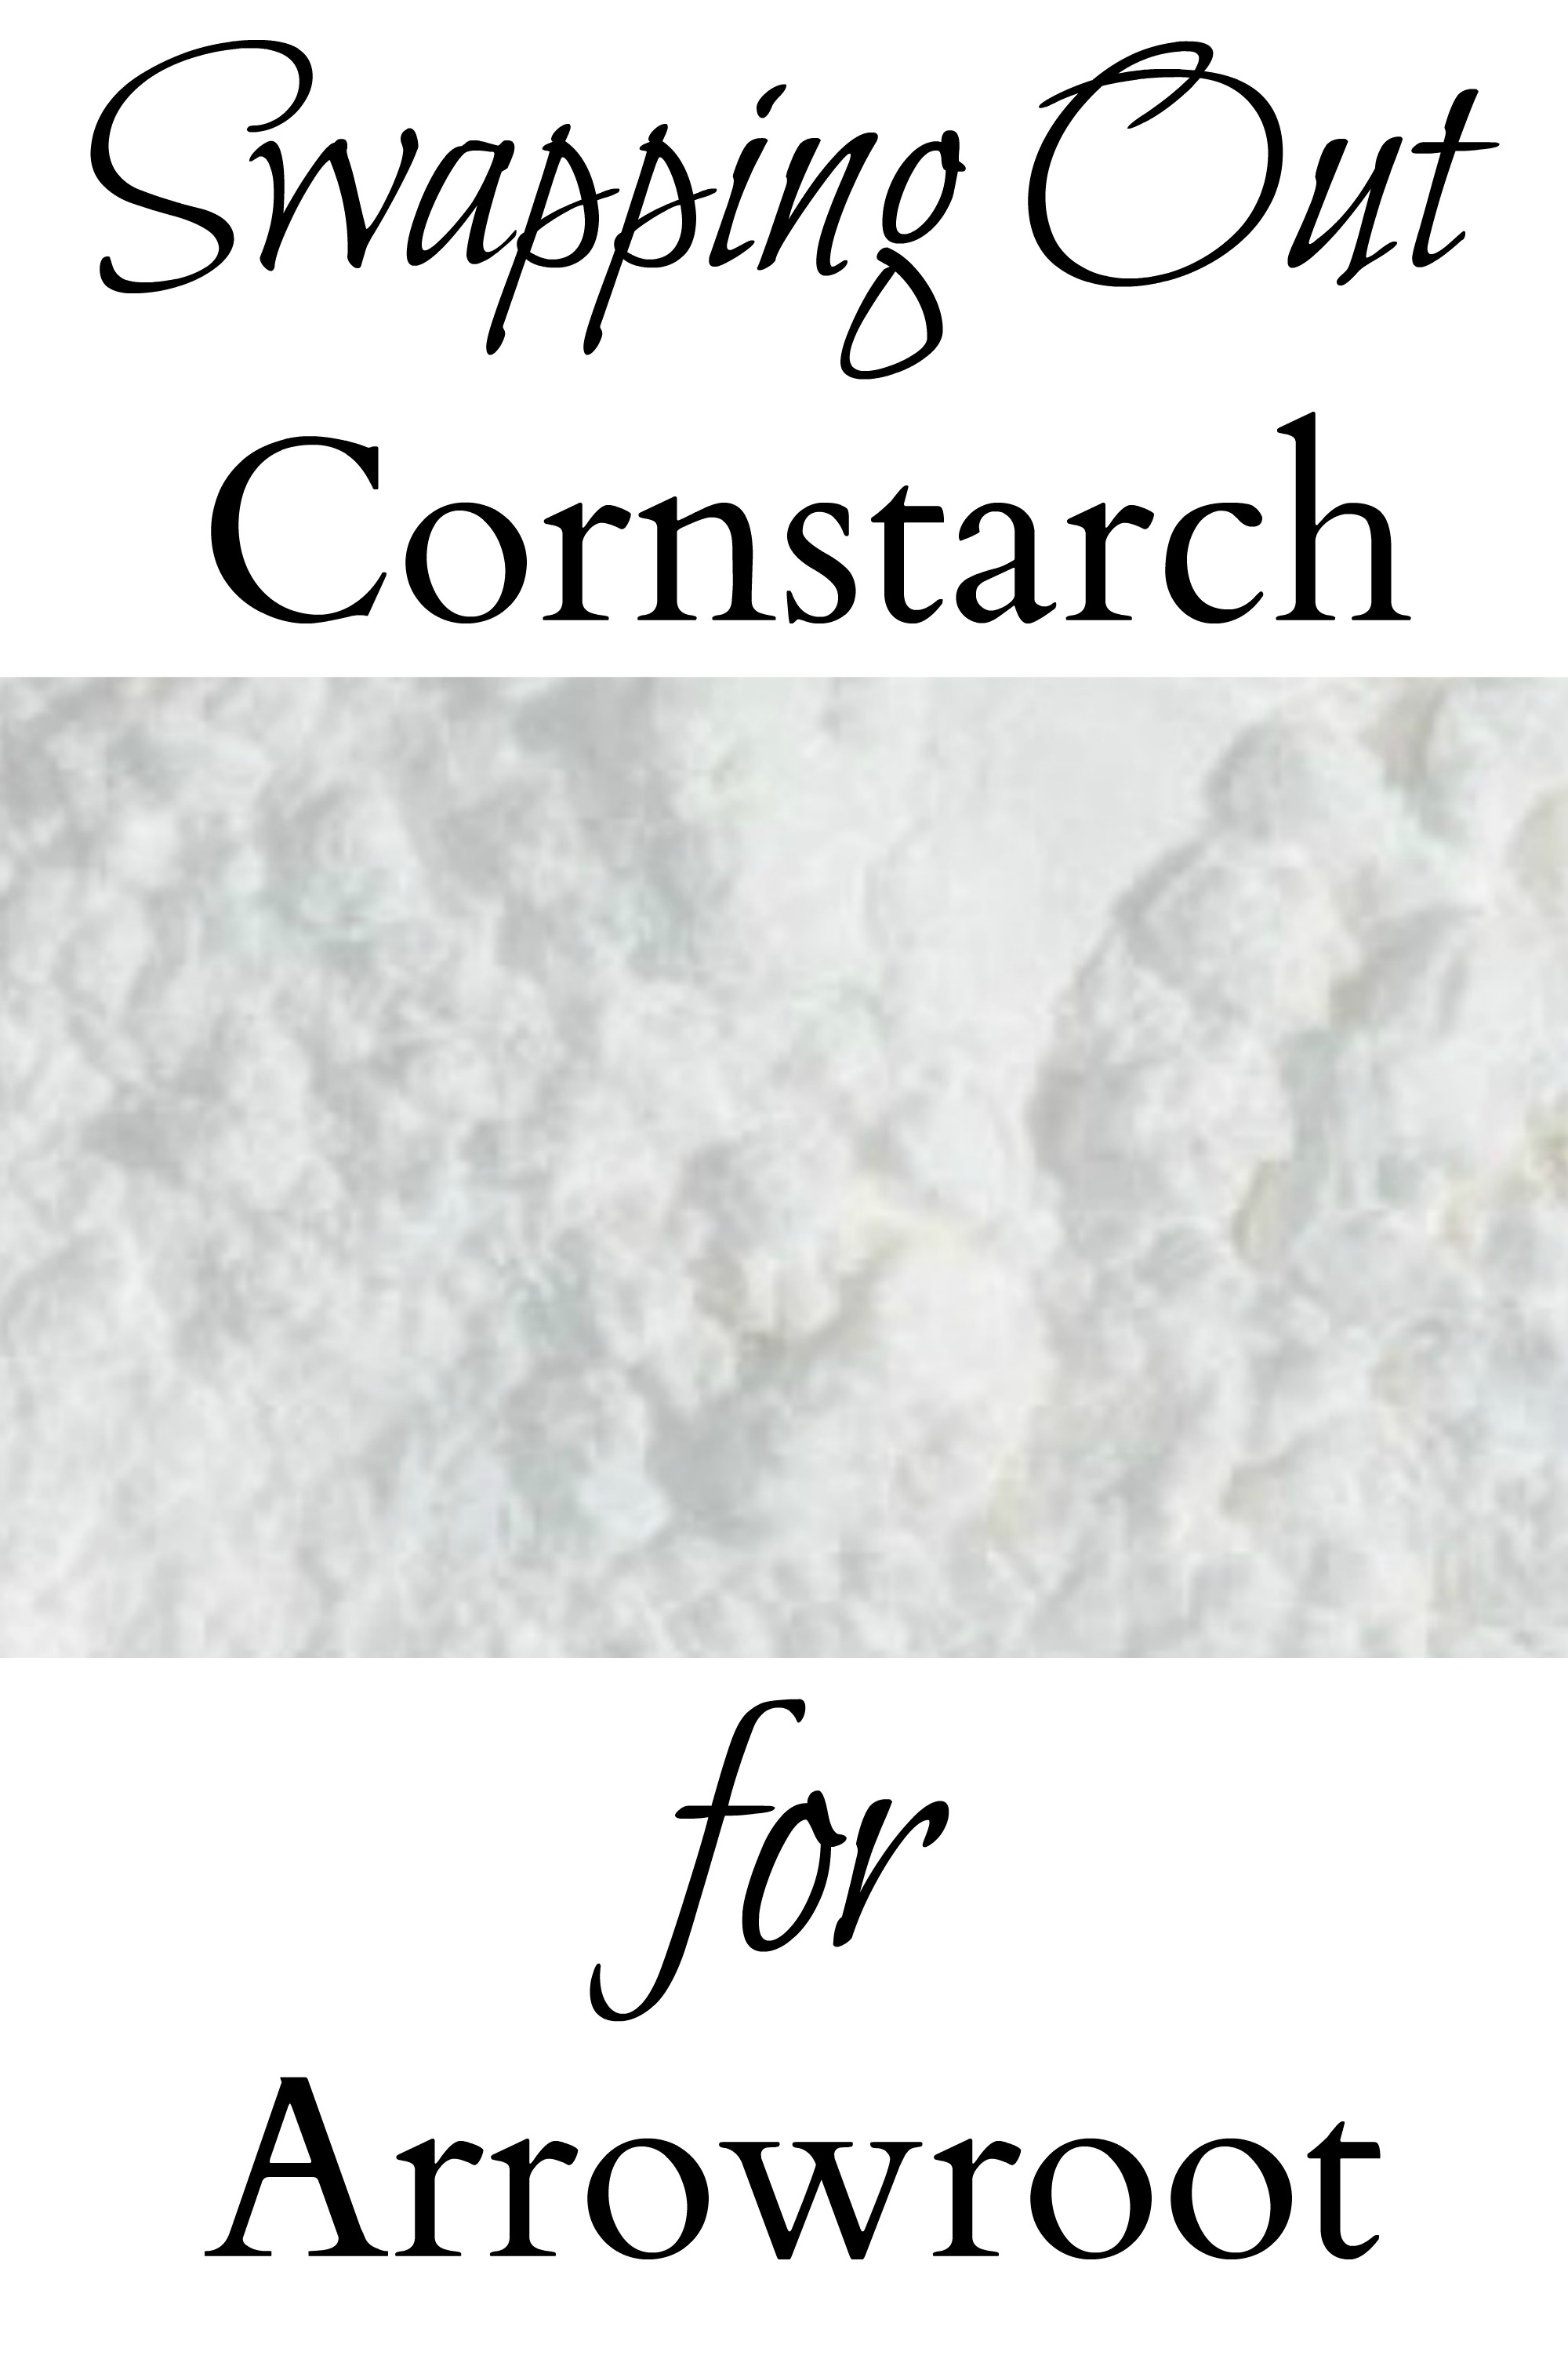 Swapping Out Cornstarch for Arrowroot